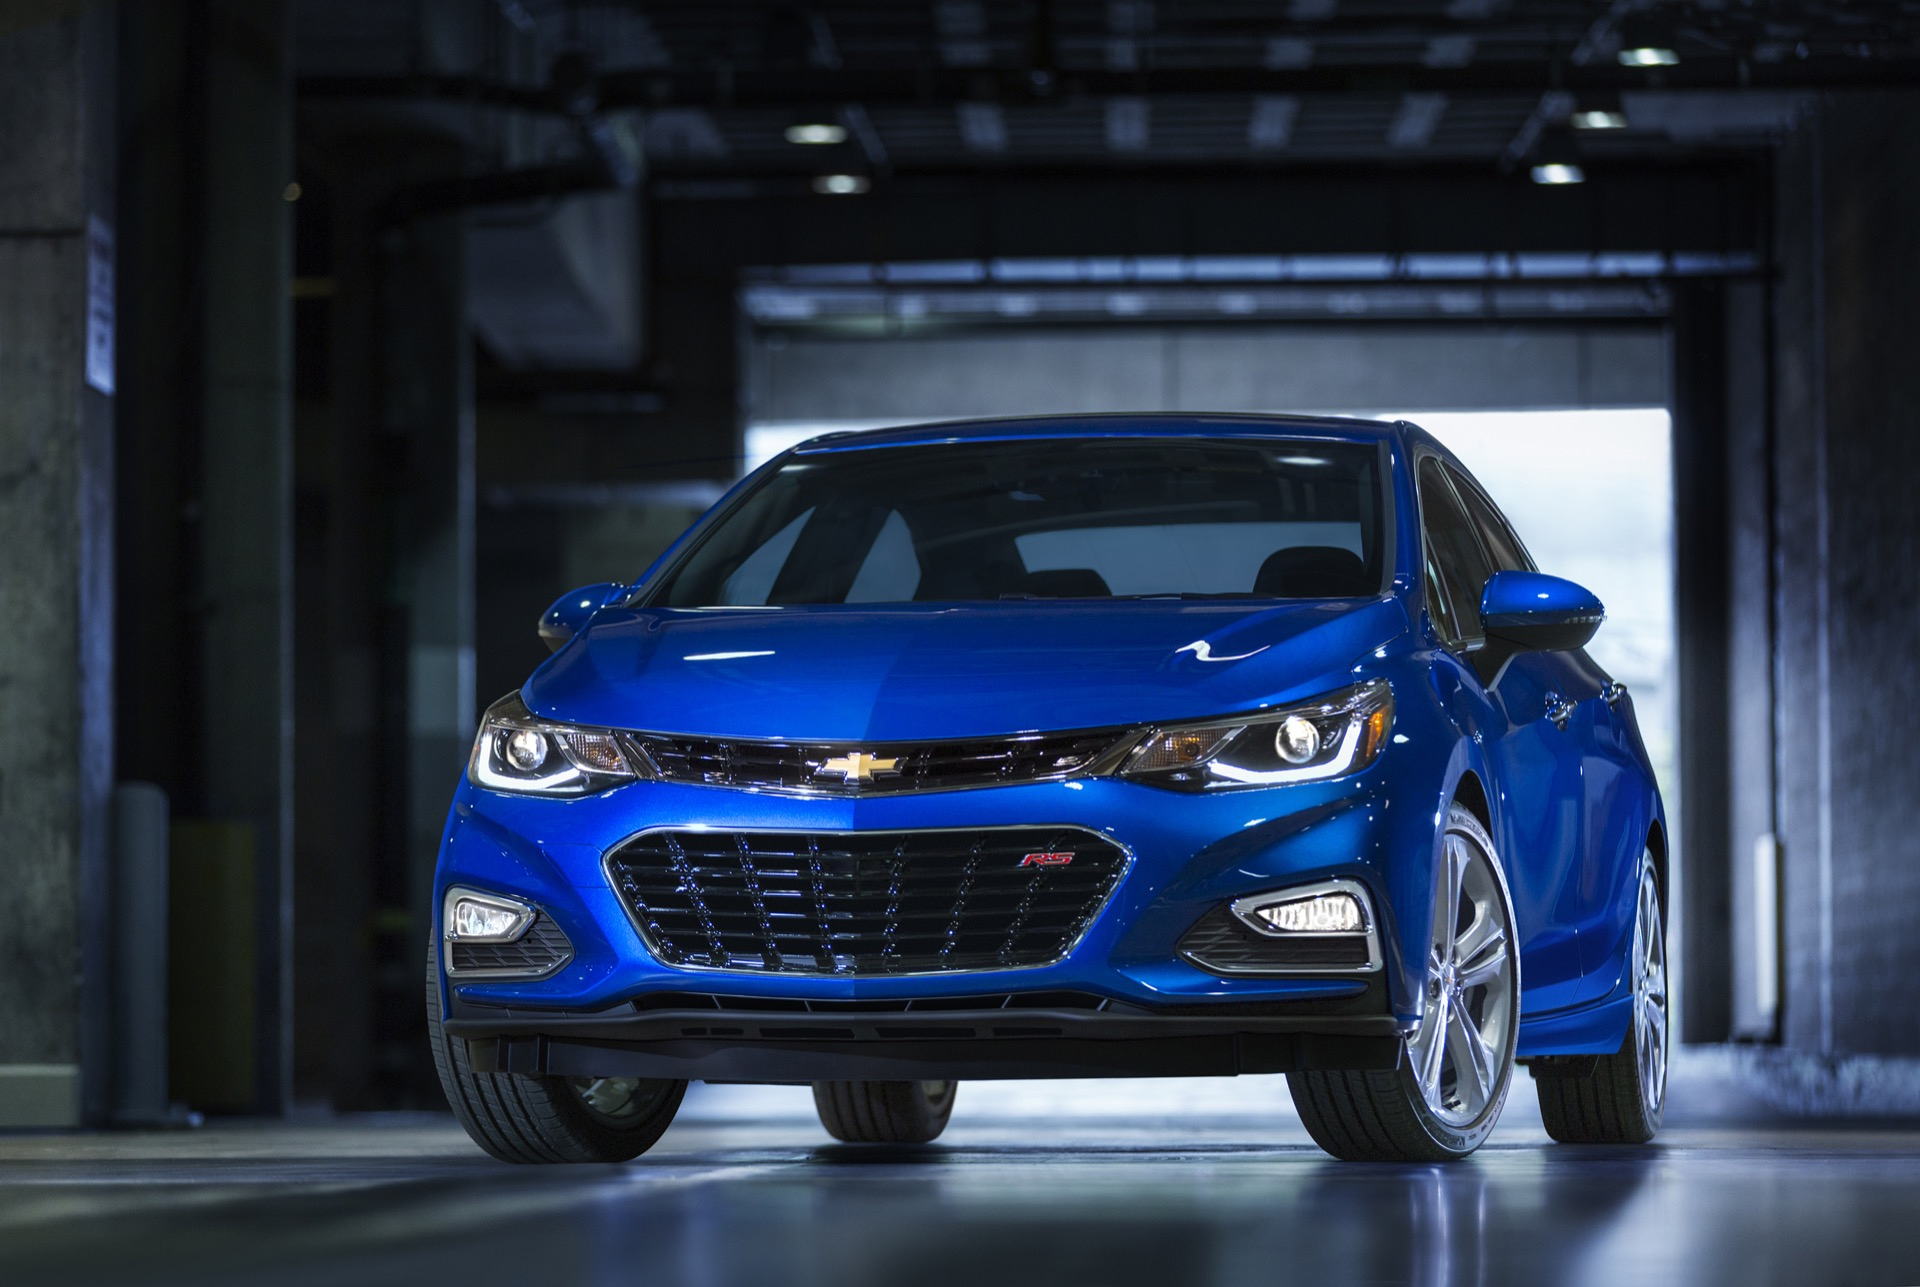 New and Used Chevrolet Cruze (Chevy): Prices, Photos, Reviews, Specs - The Car Connection